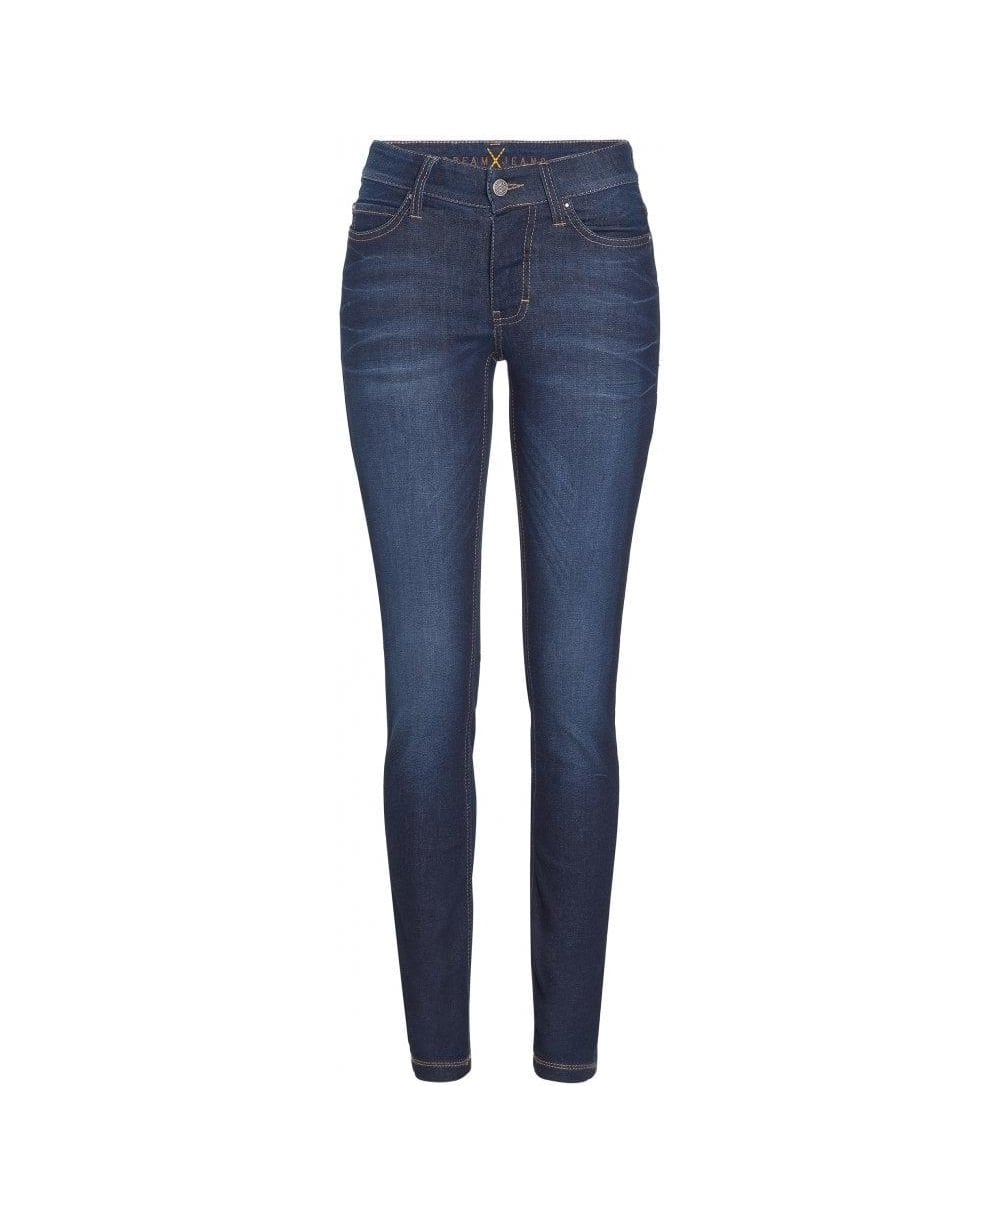 MAC JEANS dream skinny jean QYEILAA